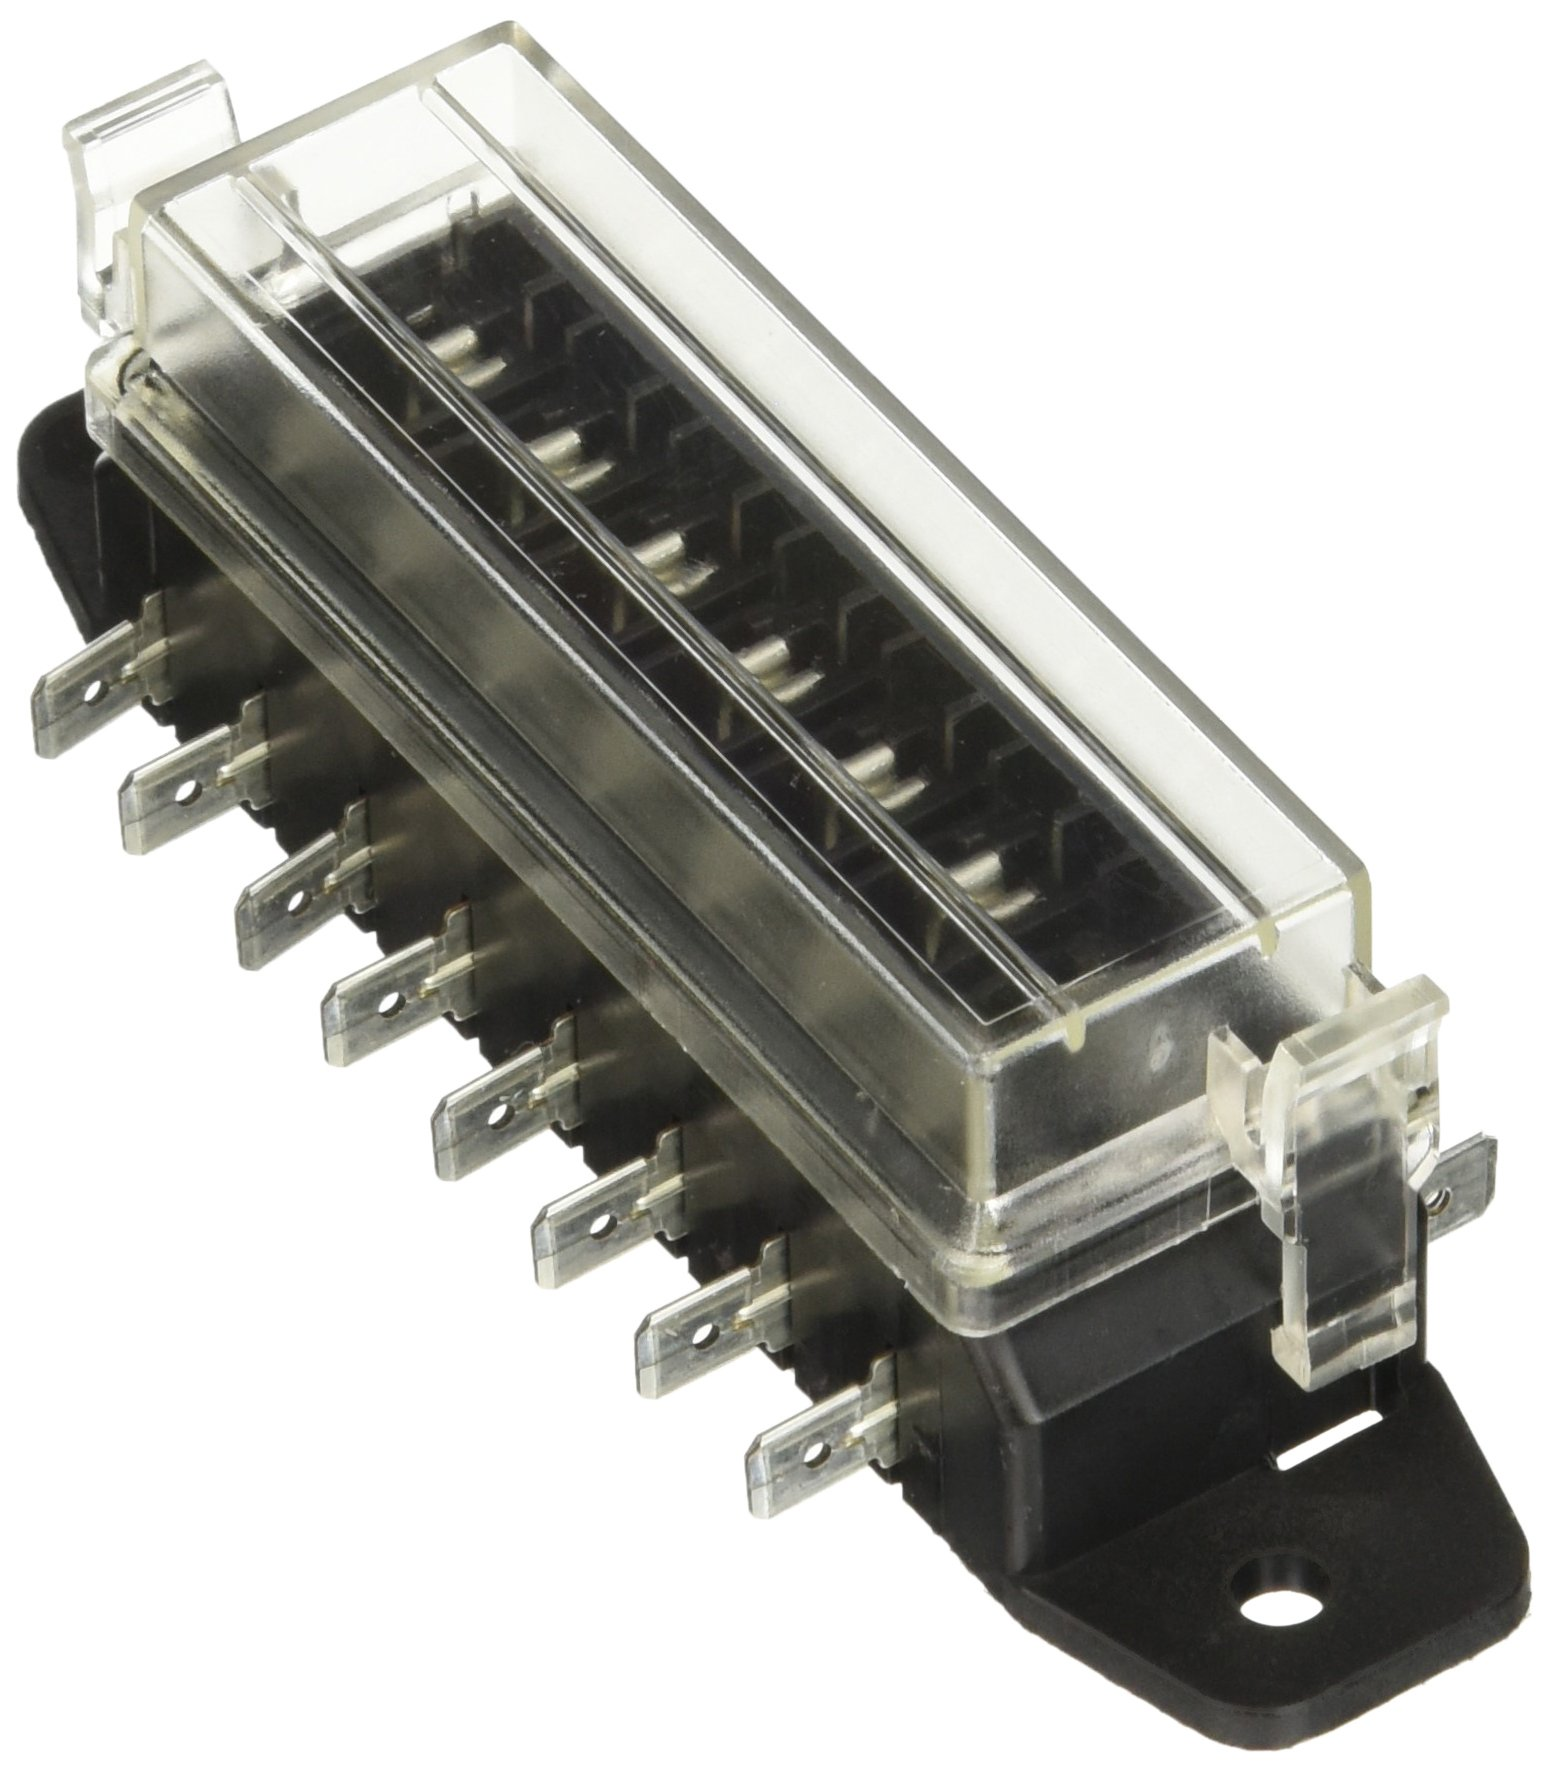 Hella H84960111 8 Way Lateral Single Fuse Box Automotive International Connector